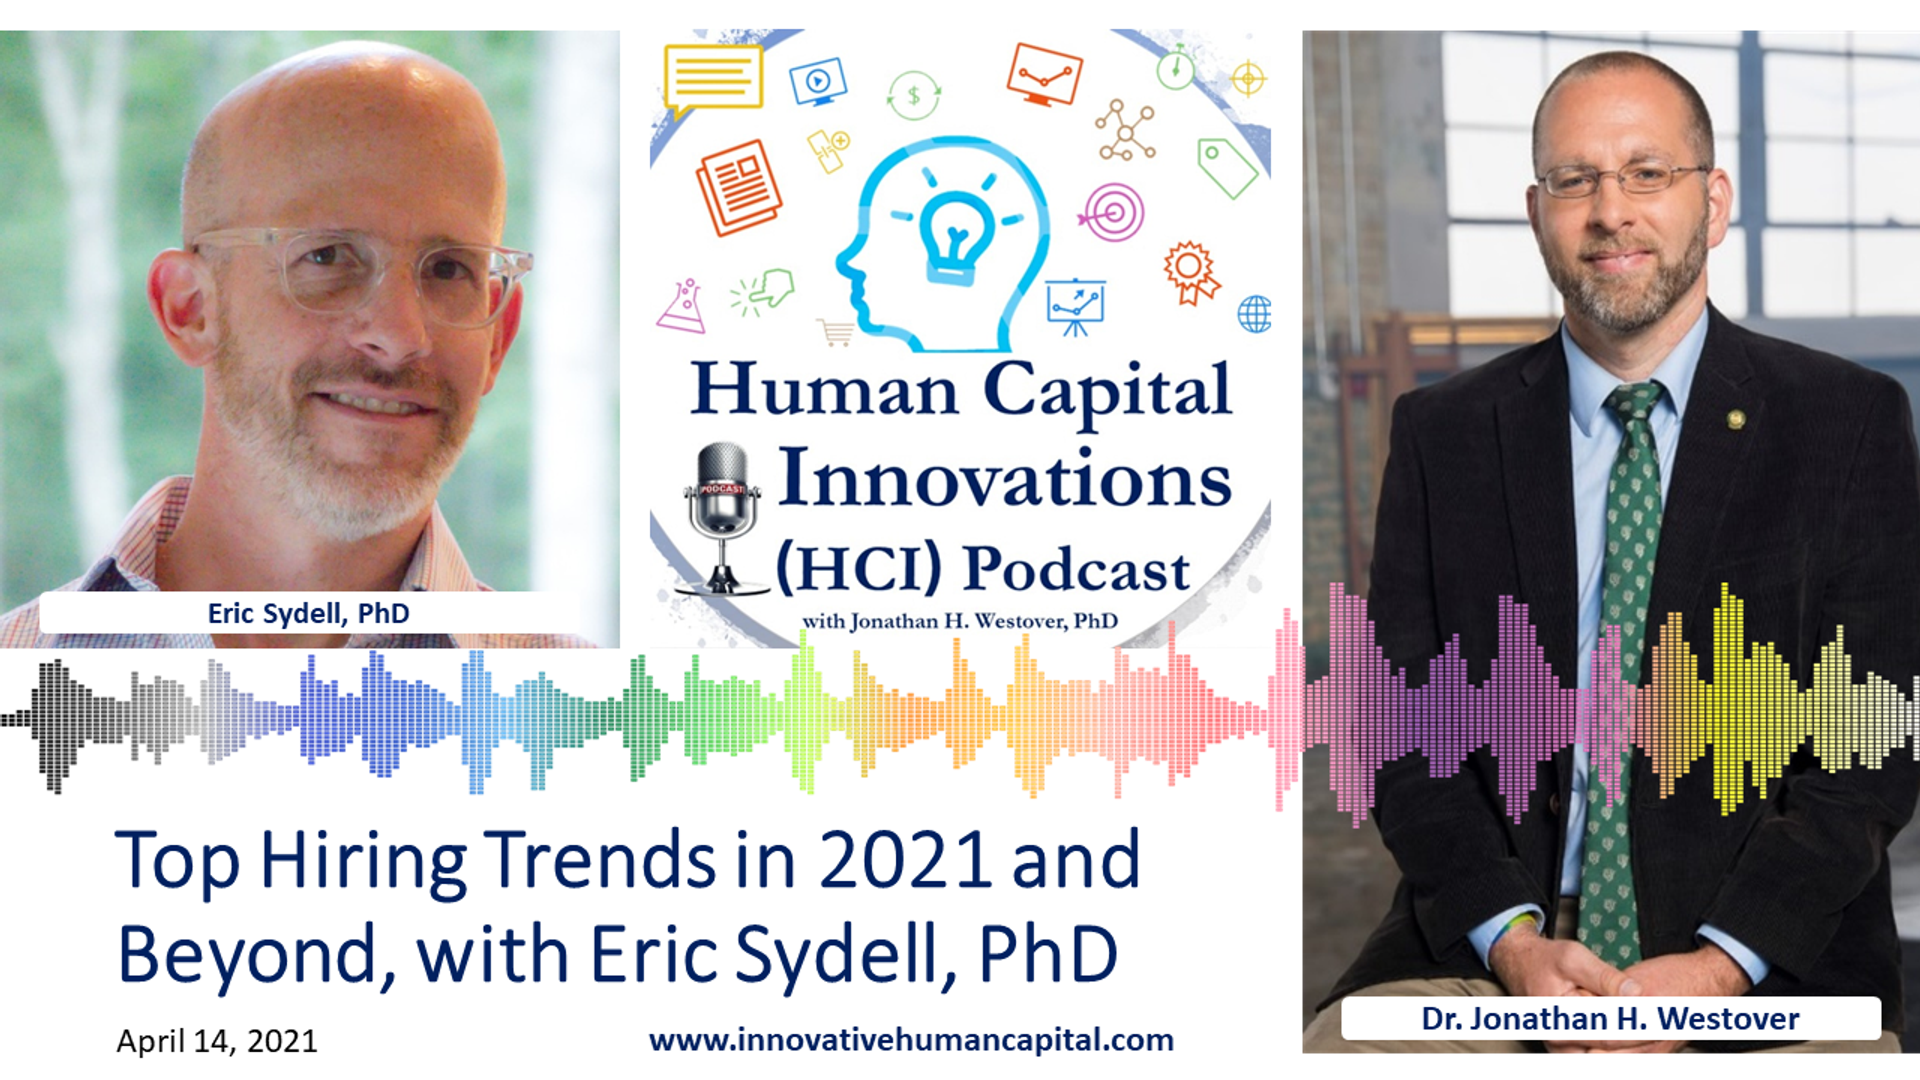 Top Hiring Trends in 2021 and Beyond